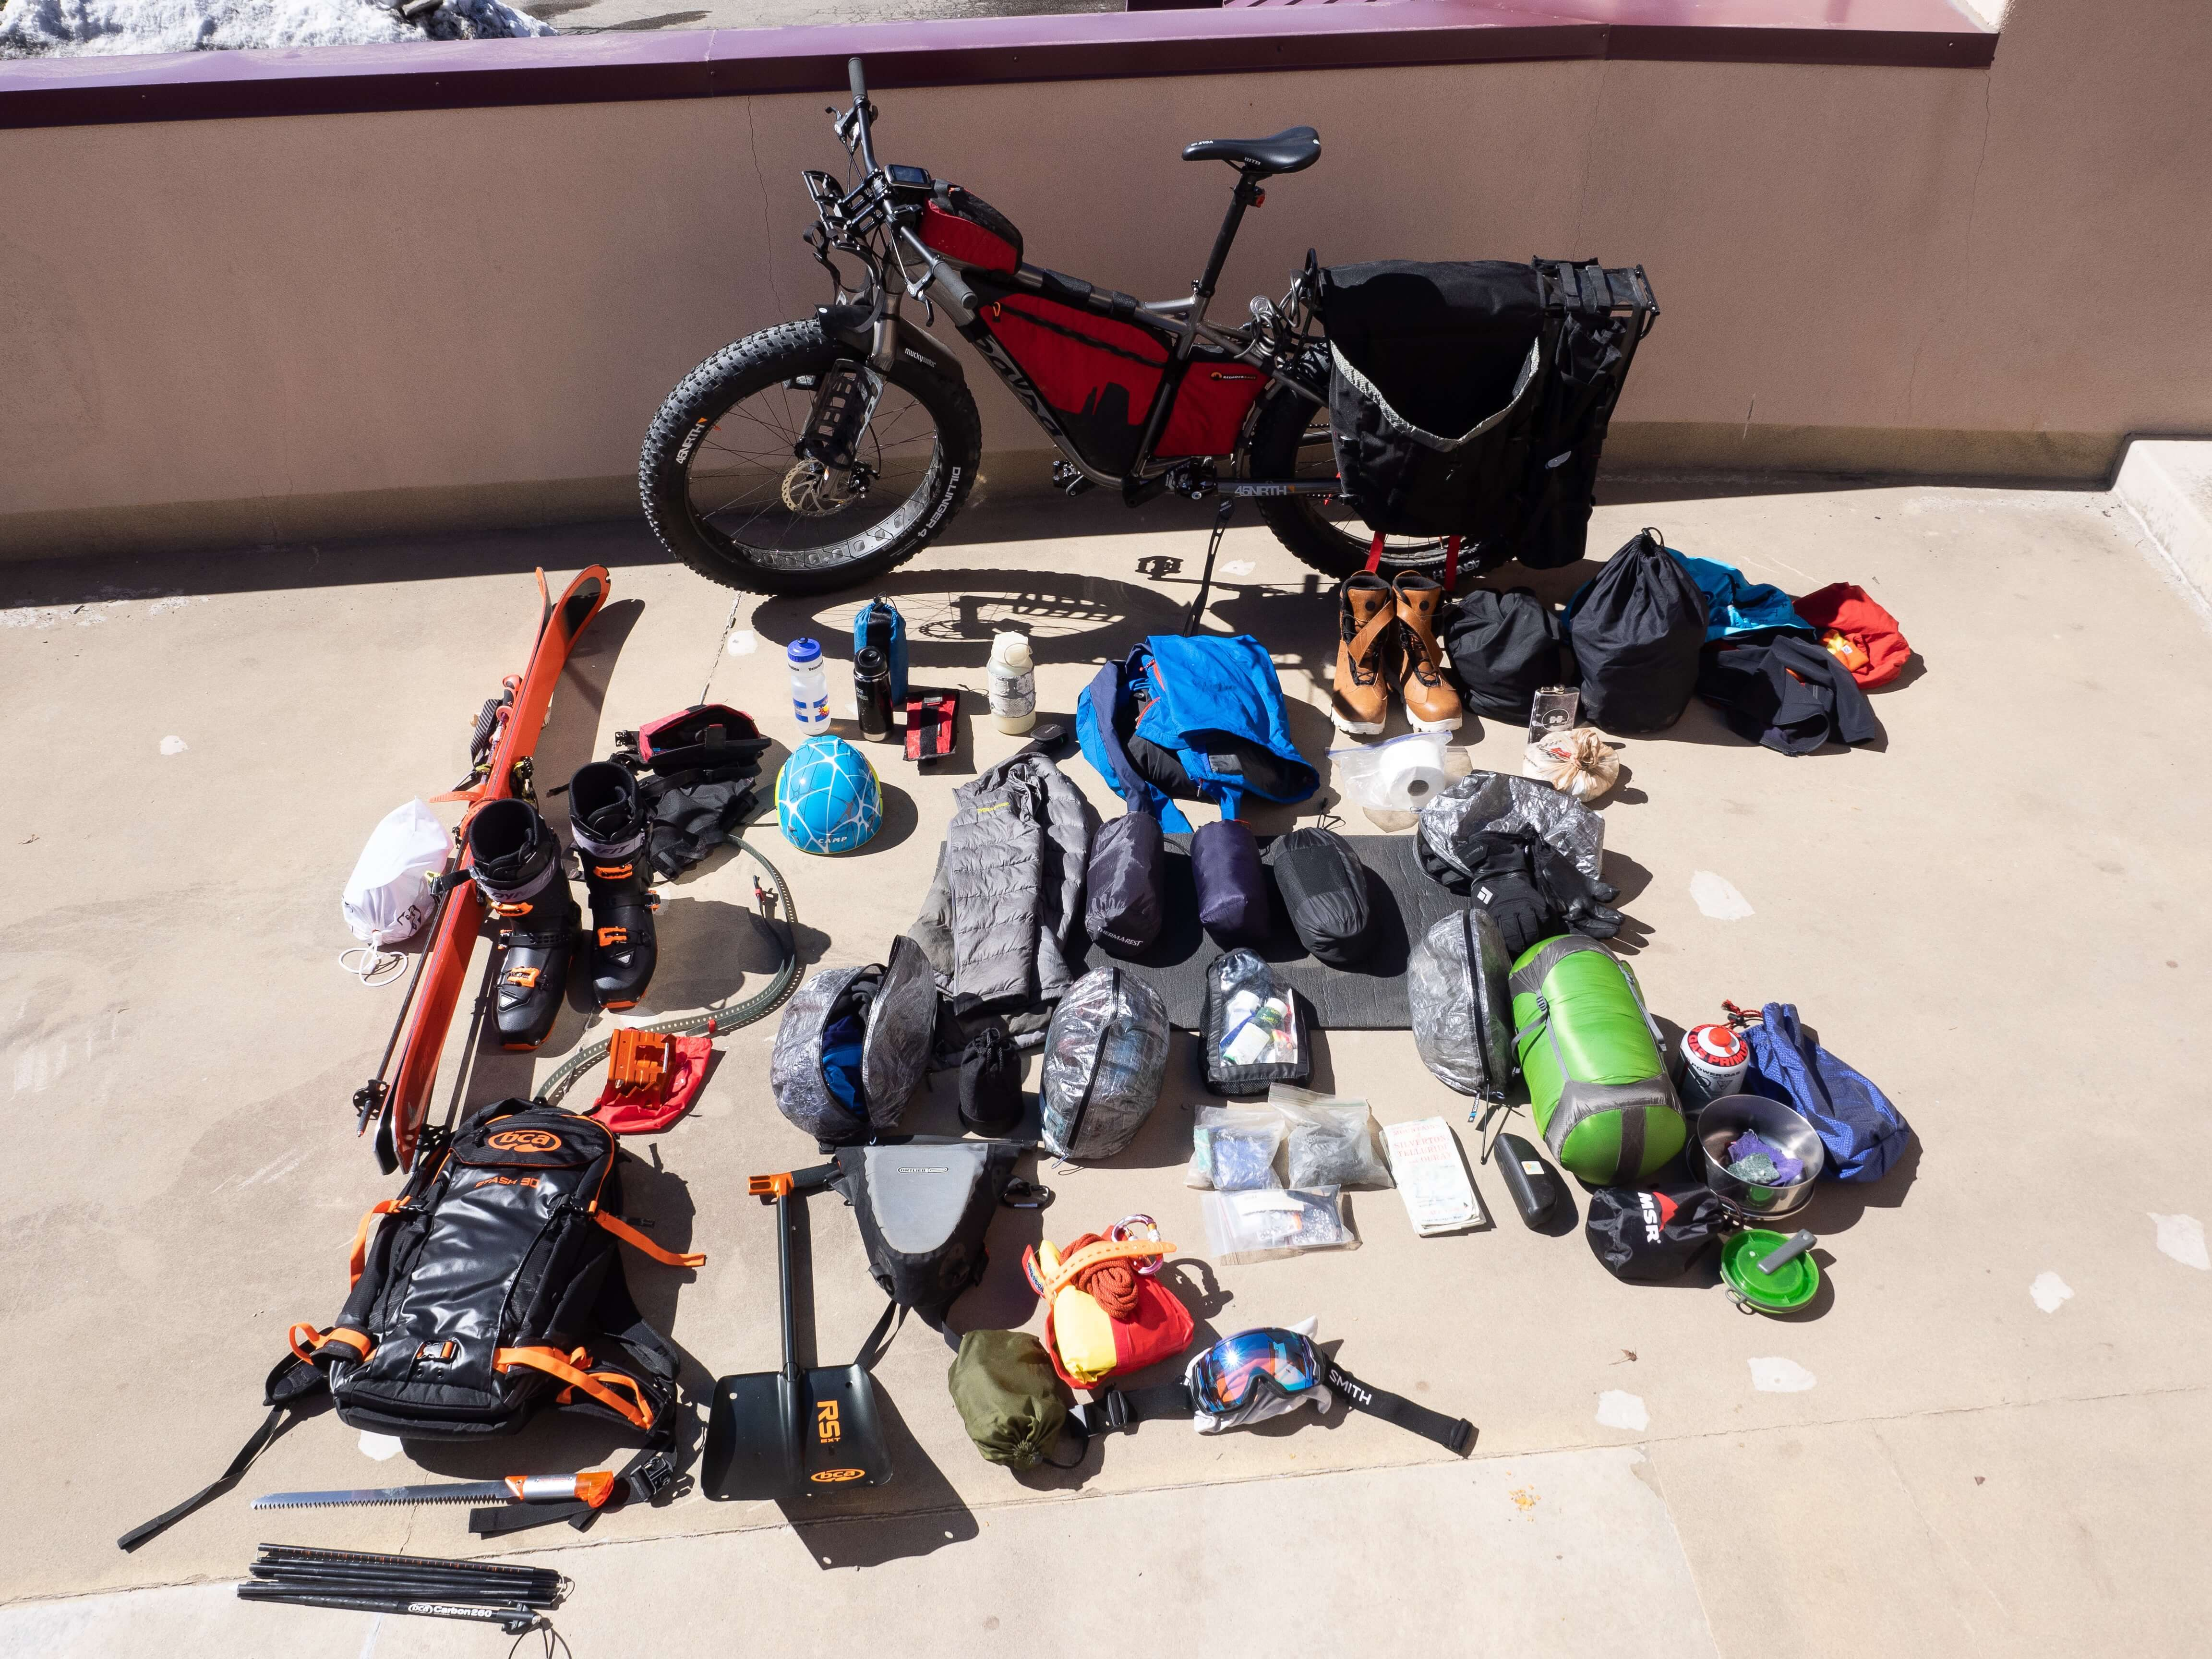 Eighteen days of self-supported fun requires a big bike to carry all of the gear.